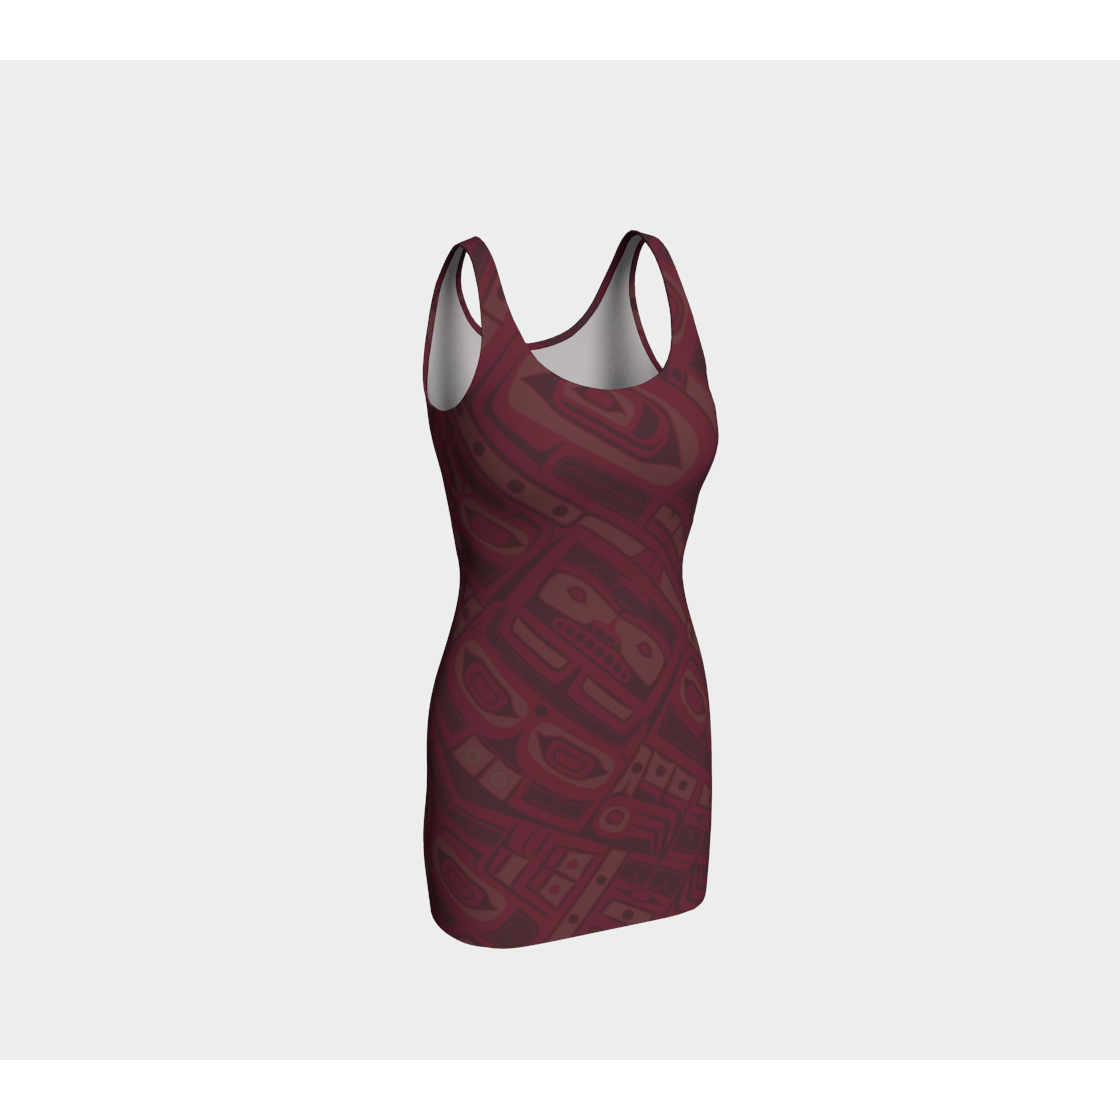 Dress - Burgundy Bodycon by Alano Edzerza